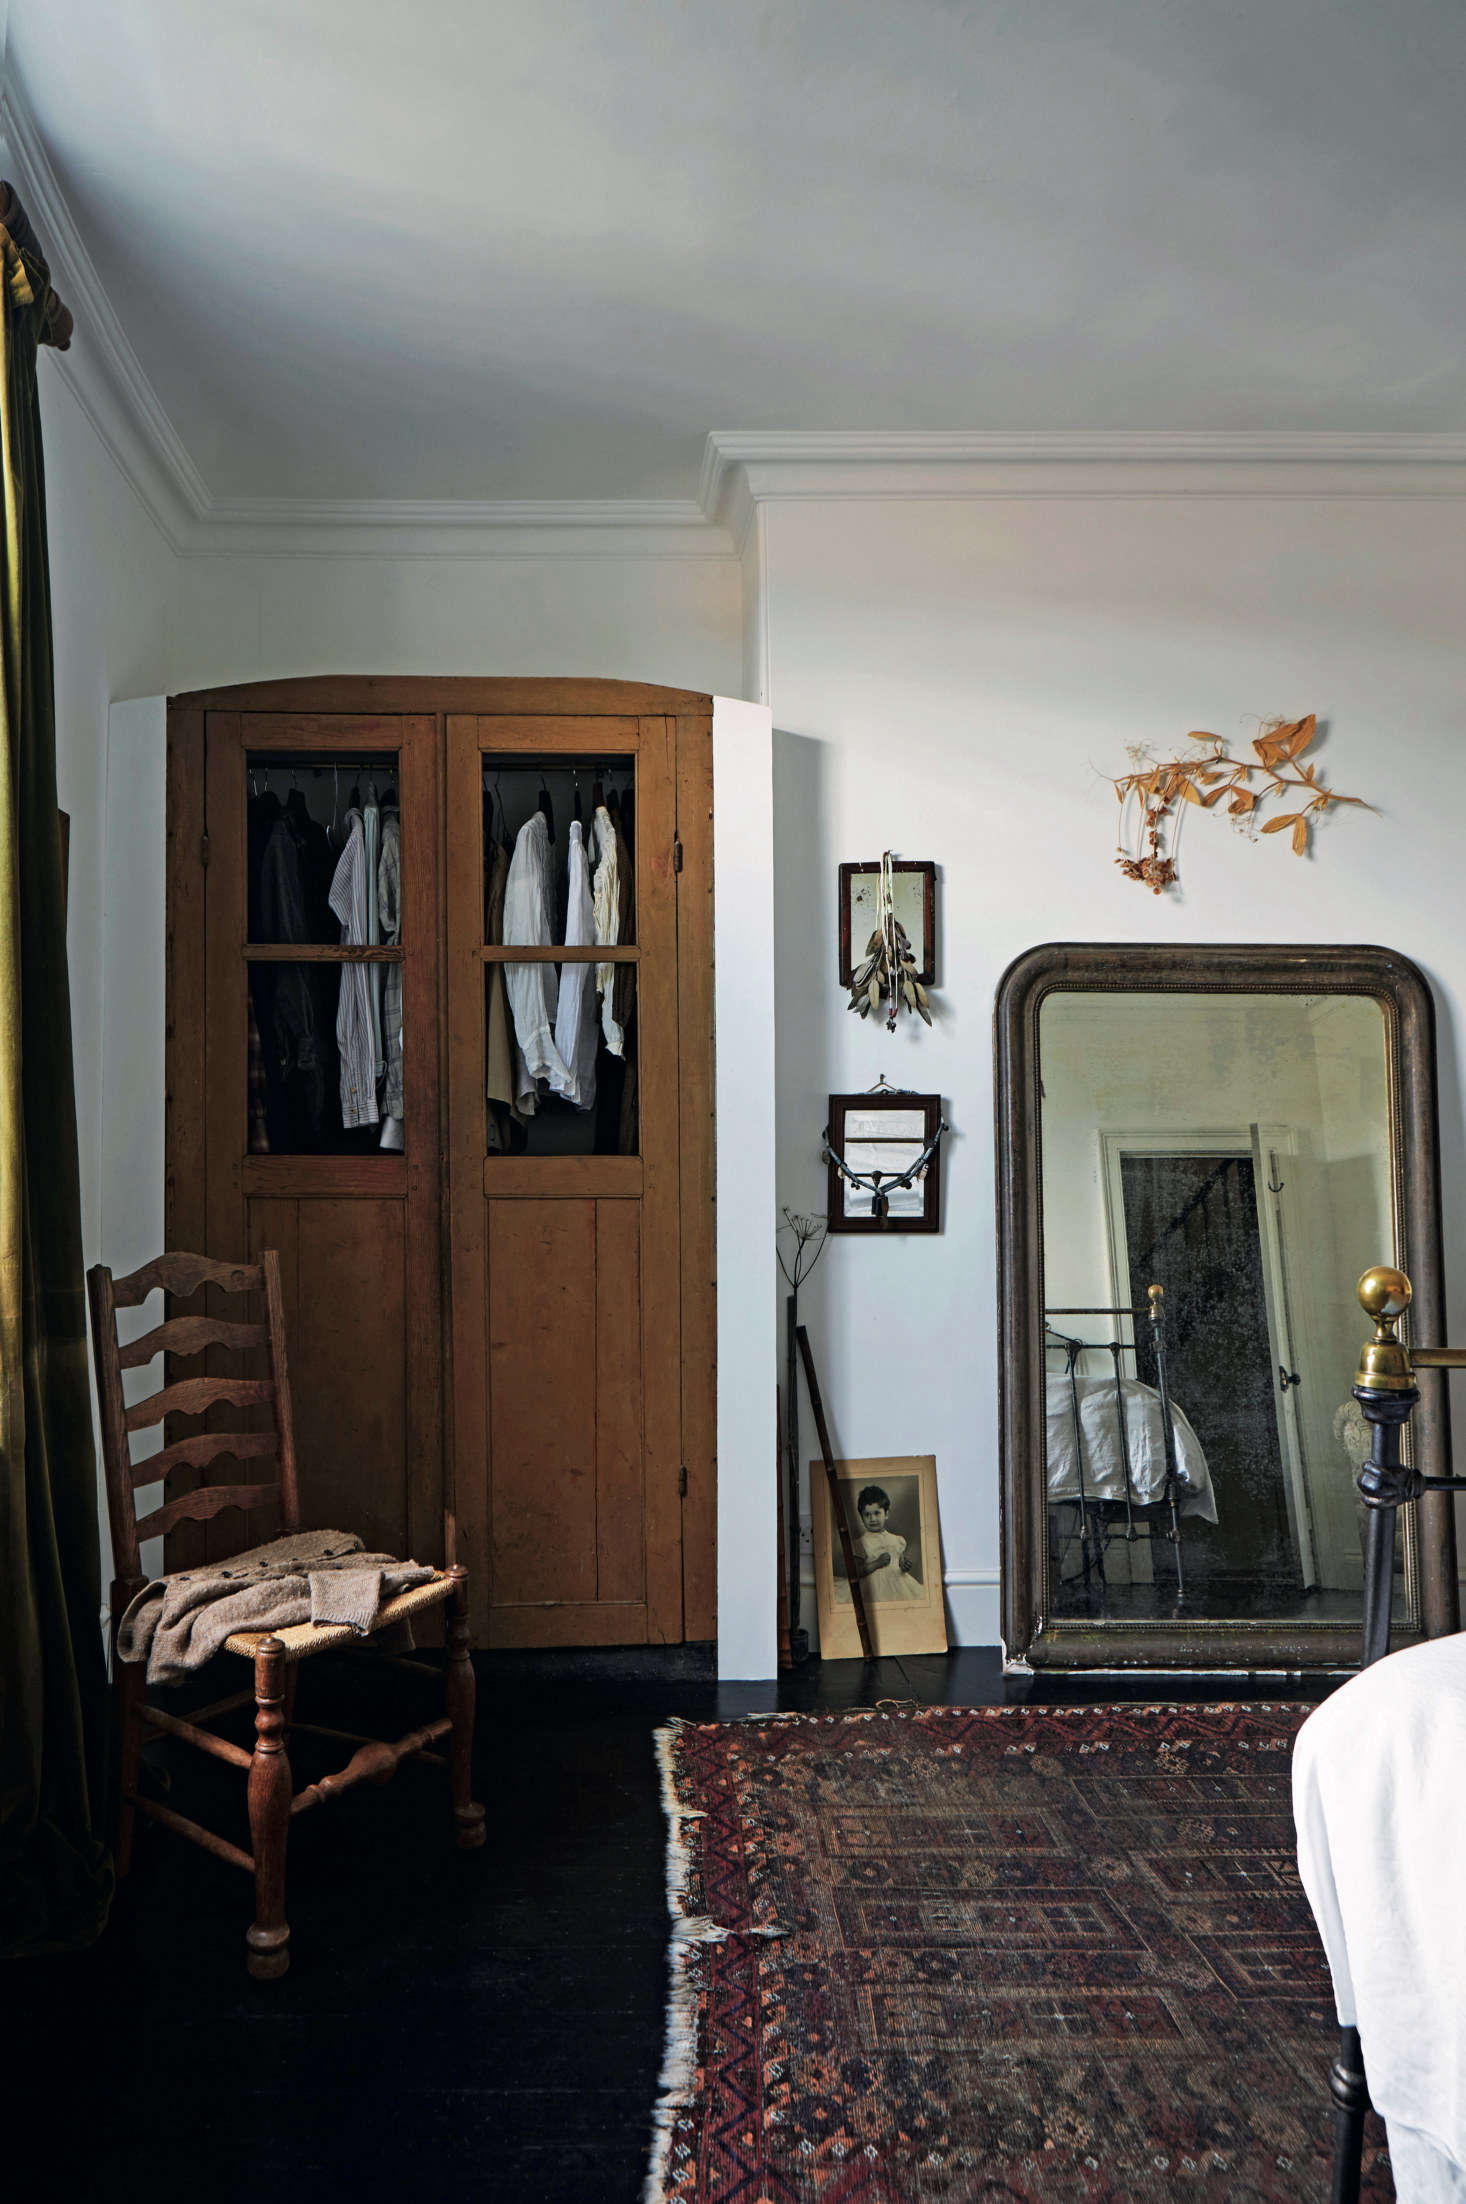 In the master bedroom, the couple inserted an antique wardrobe into a niche, and leaned a mantel mirror against the wall.